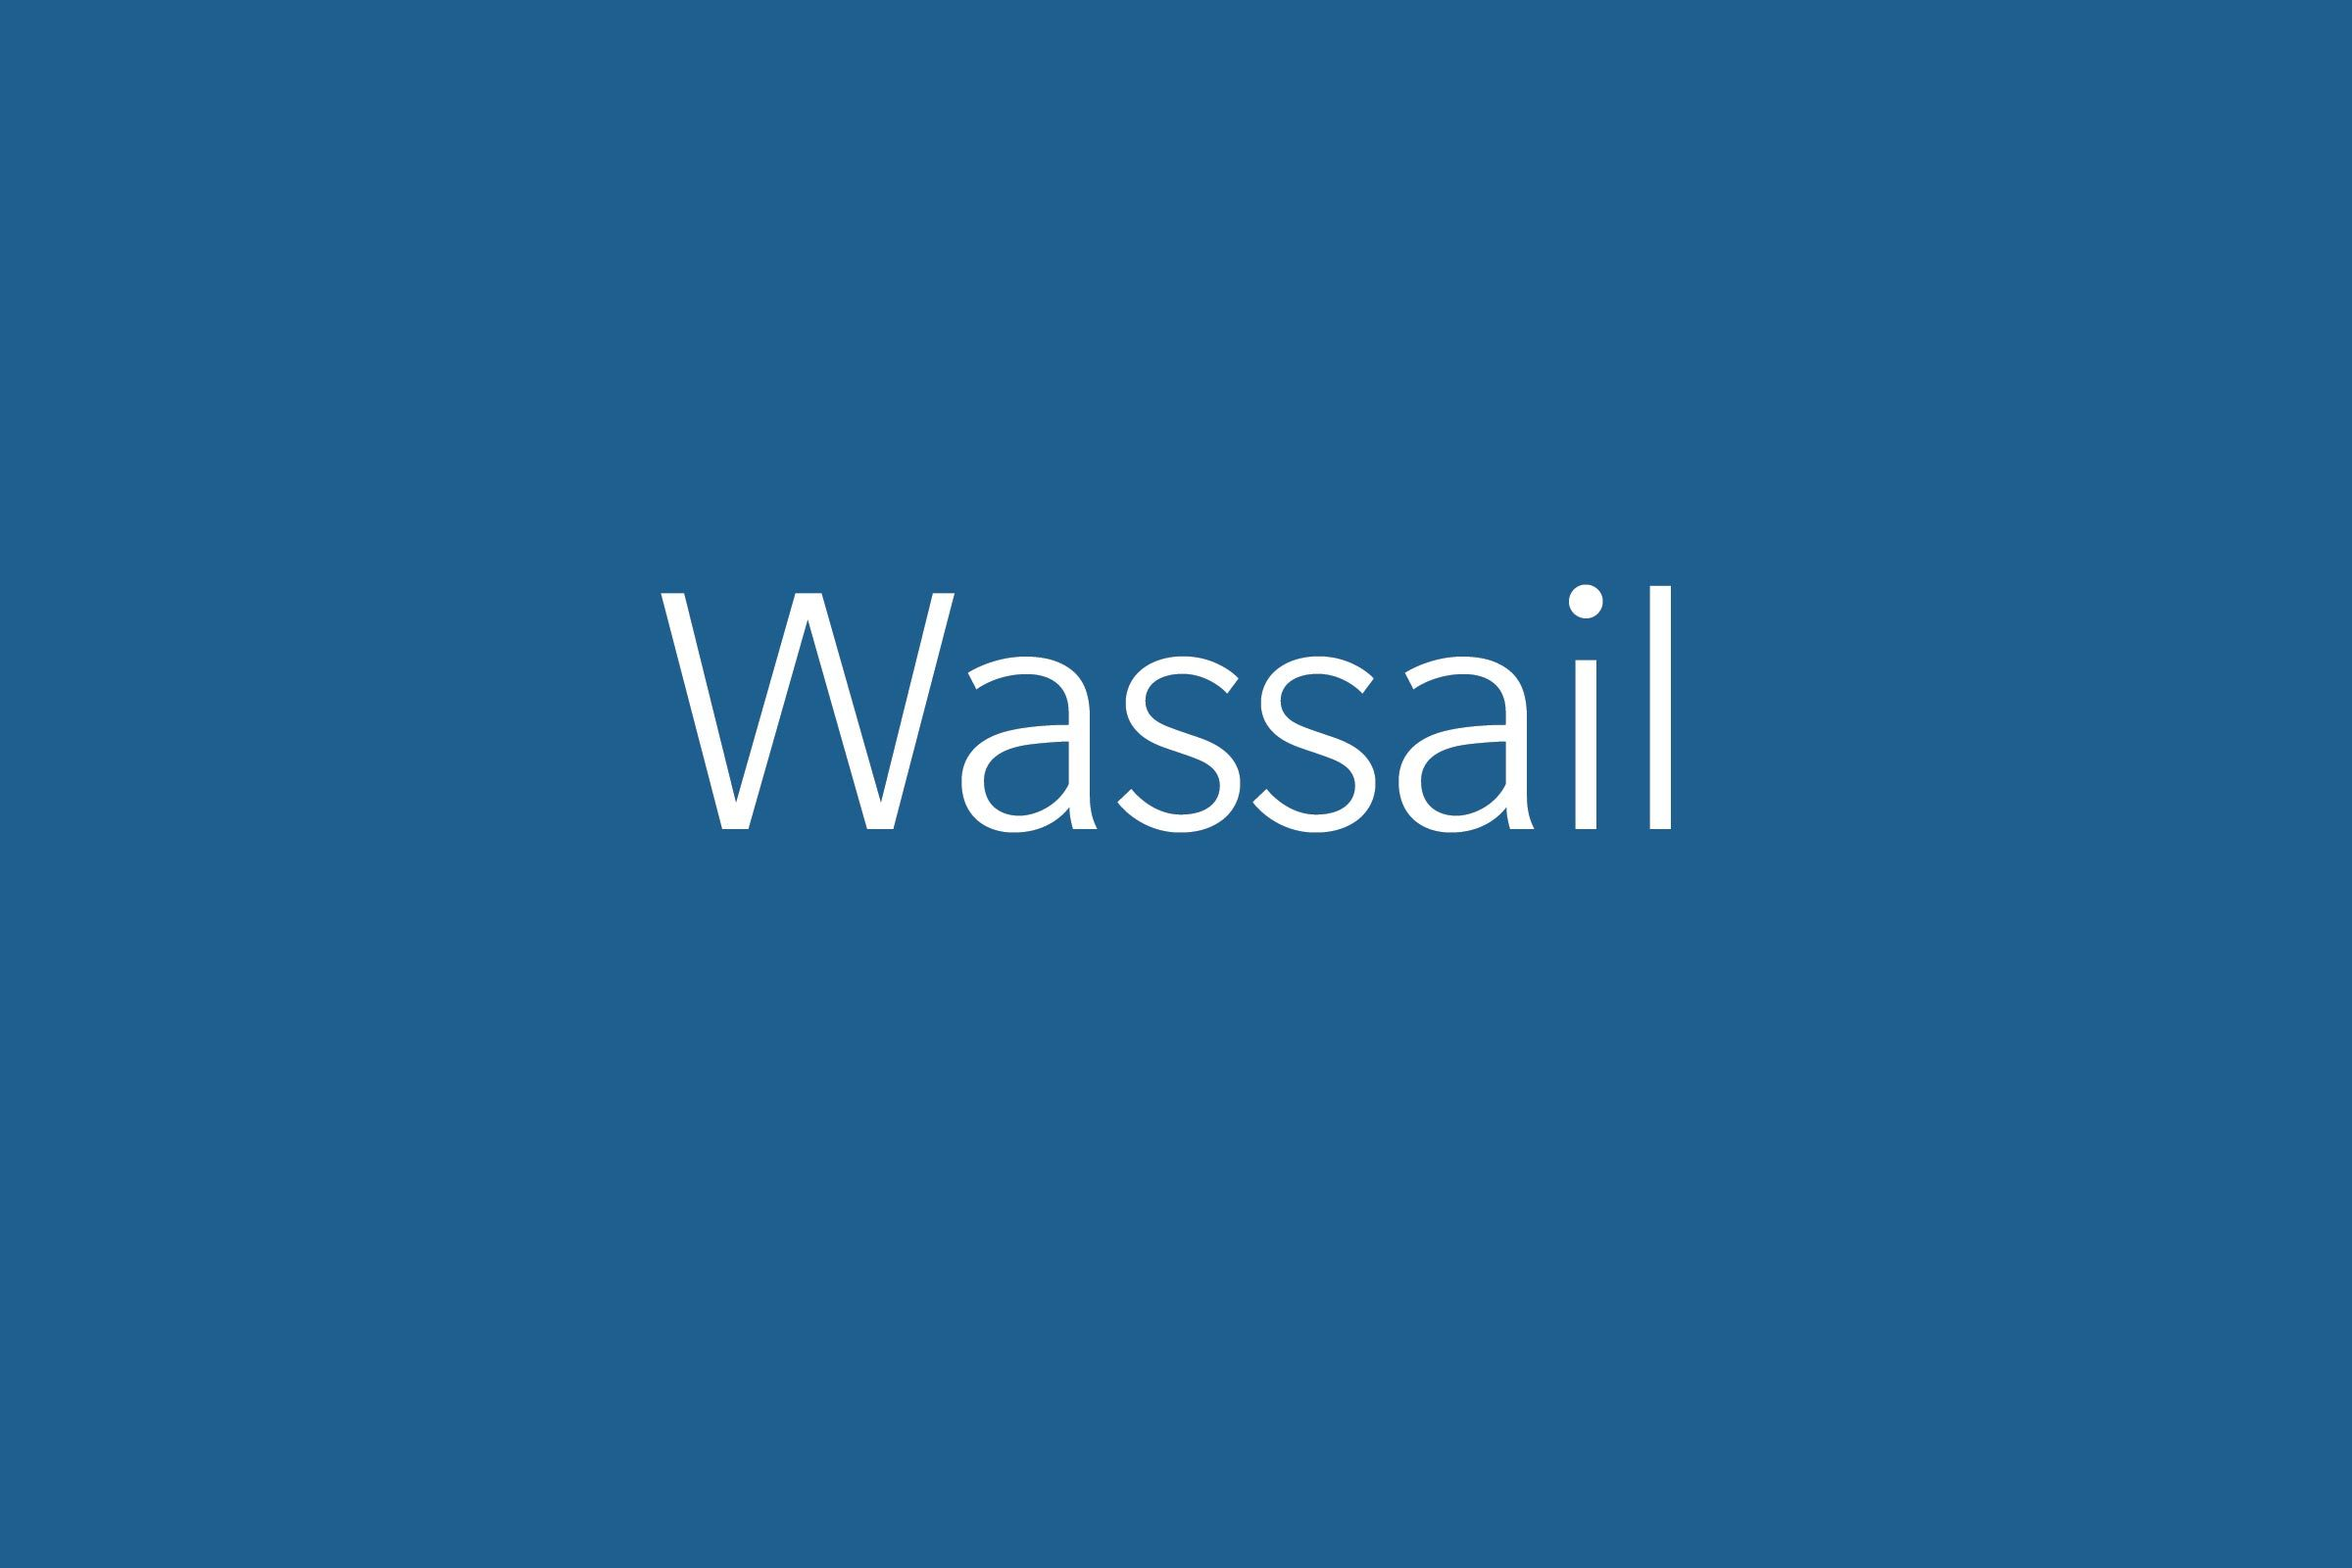 wassail funny word funny words to say